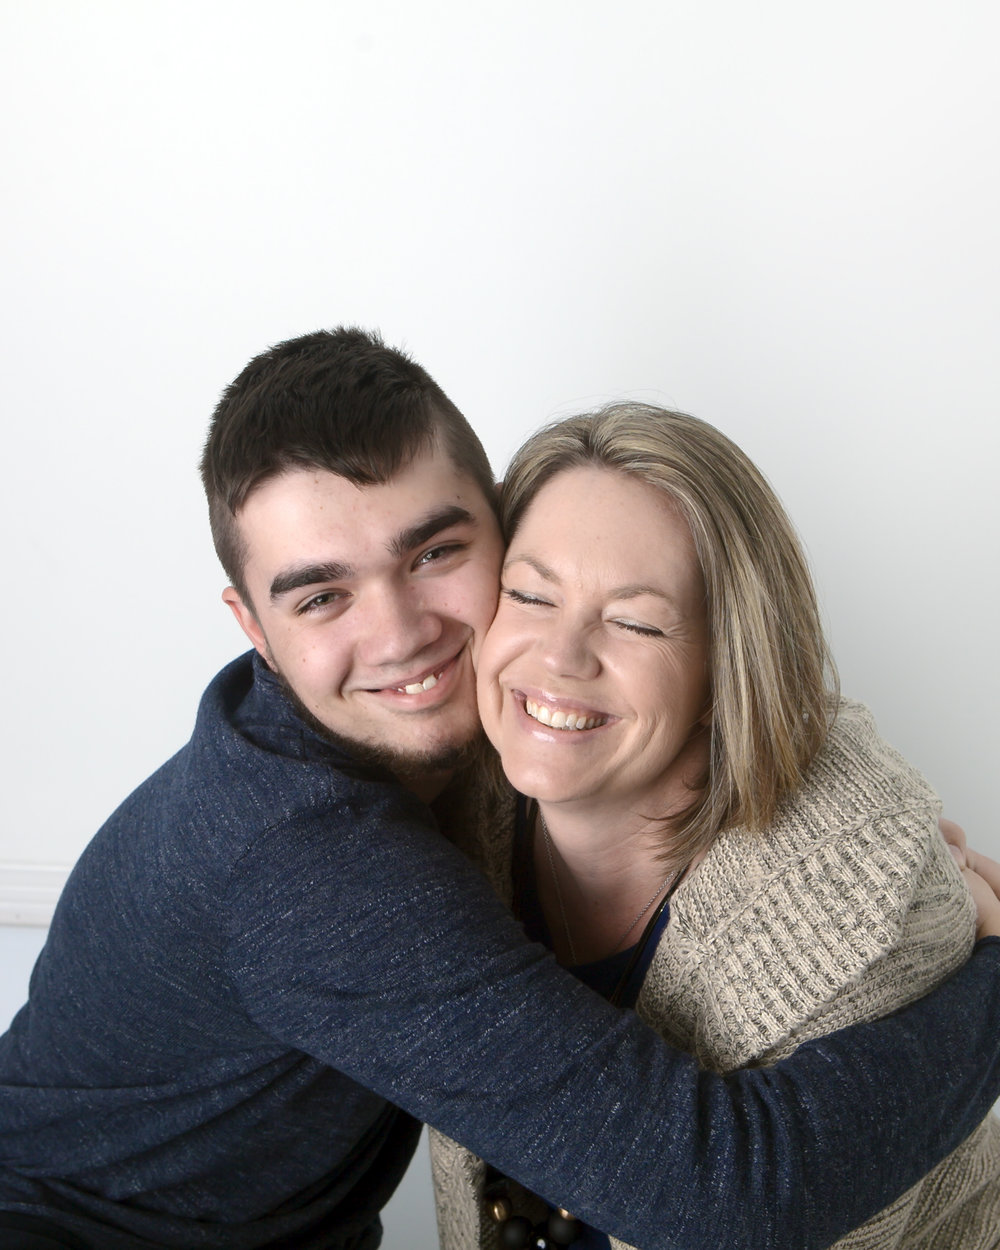 Motherandson_Portrait_Photography